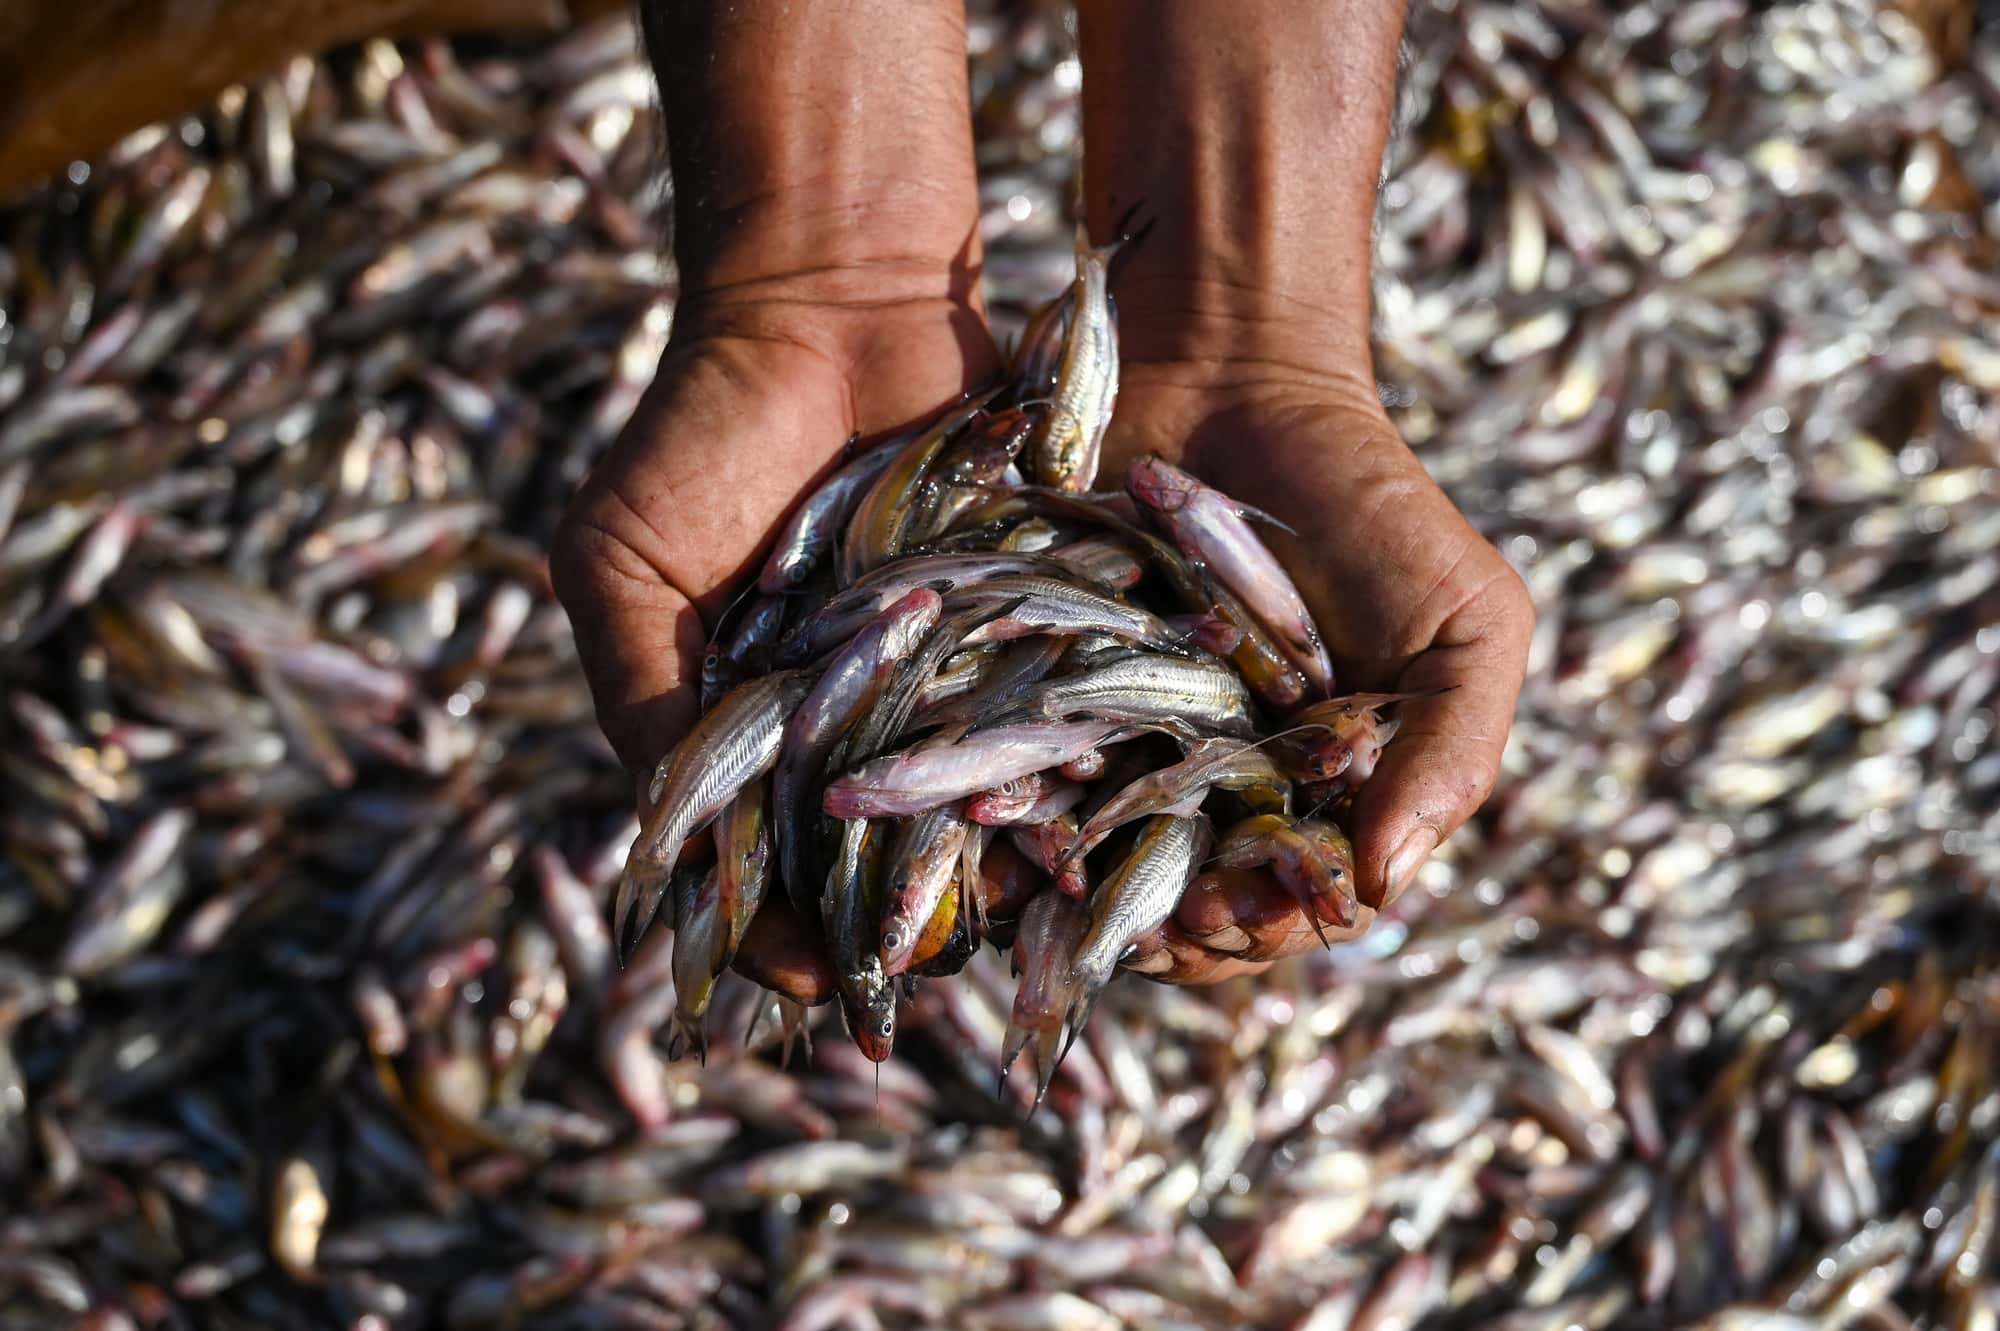 Aquatic foods are a major source of protein, micronutrients and essential fatty acids. Photo by Neil Palmer